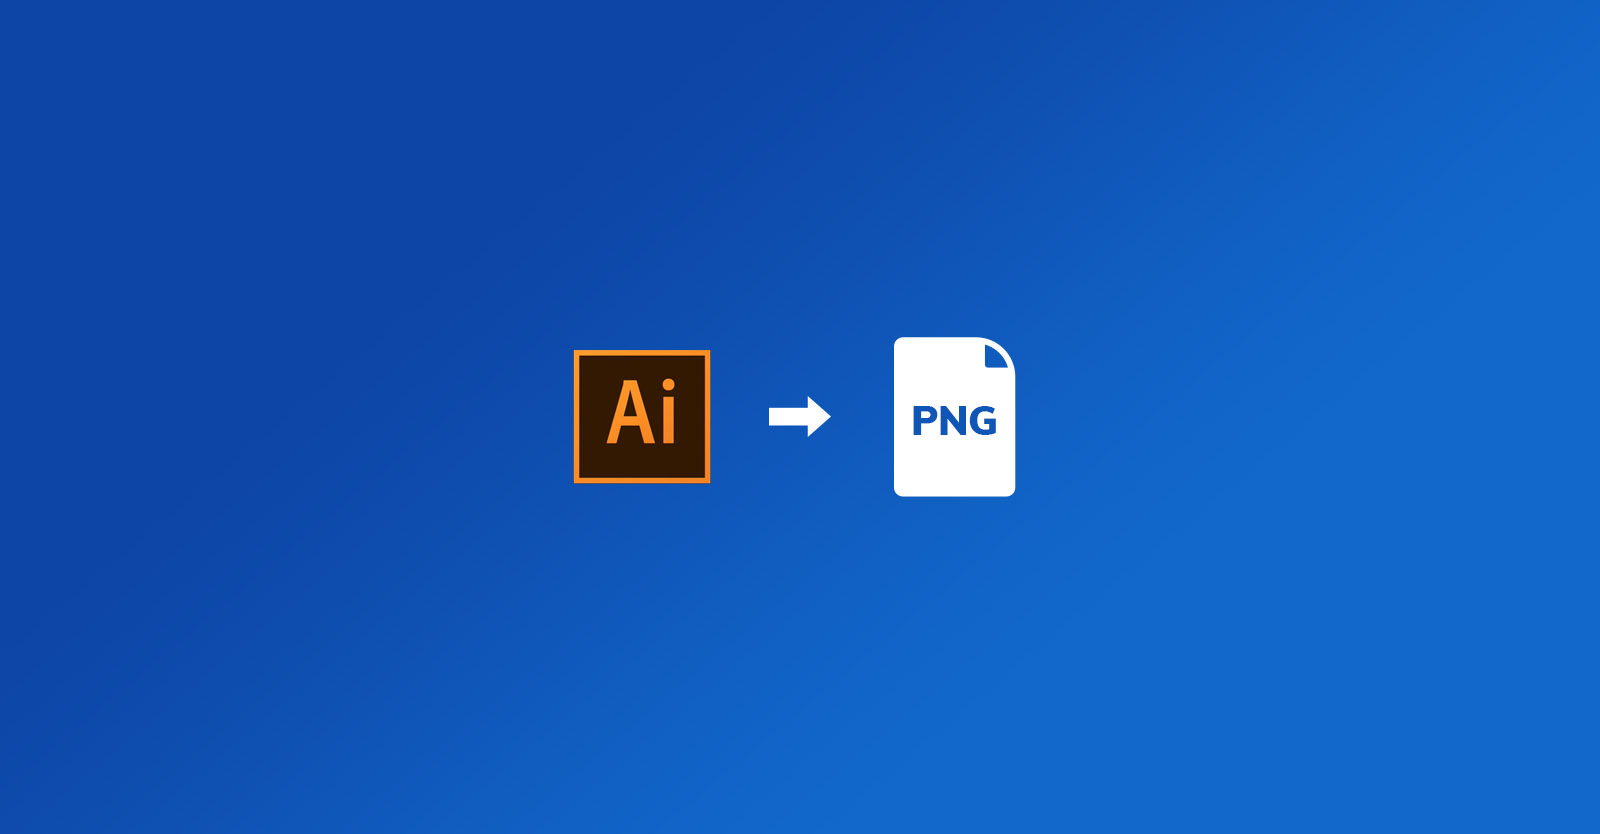 How to export a PNG file from Illustrator